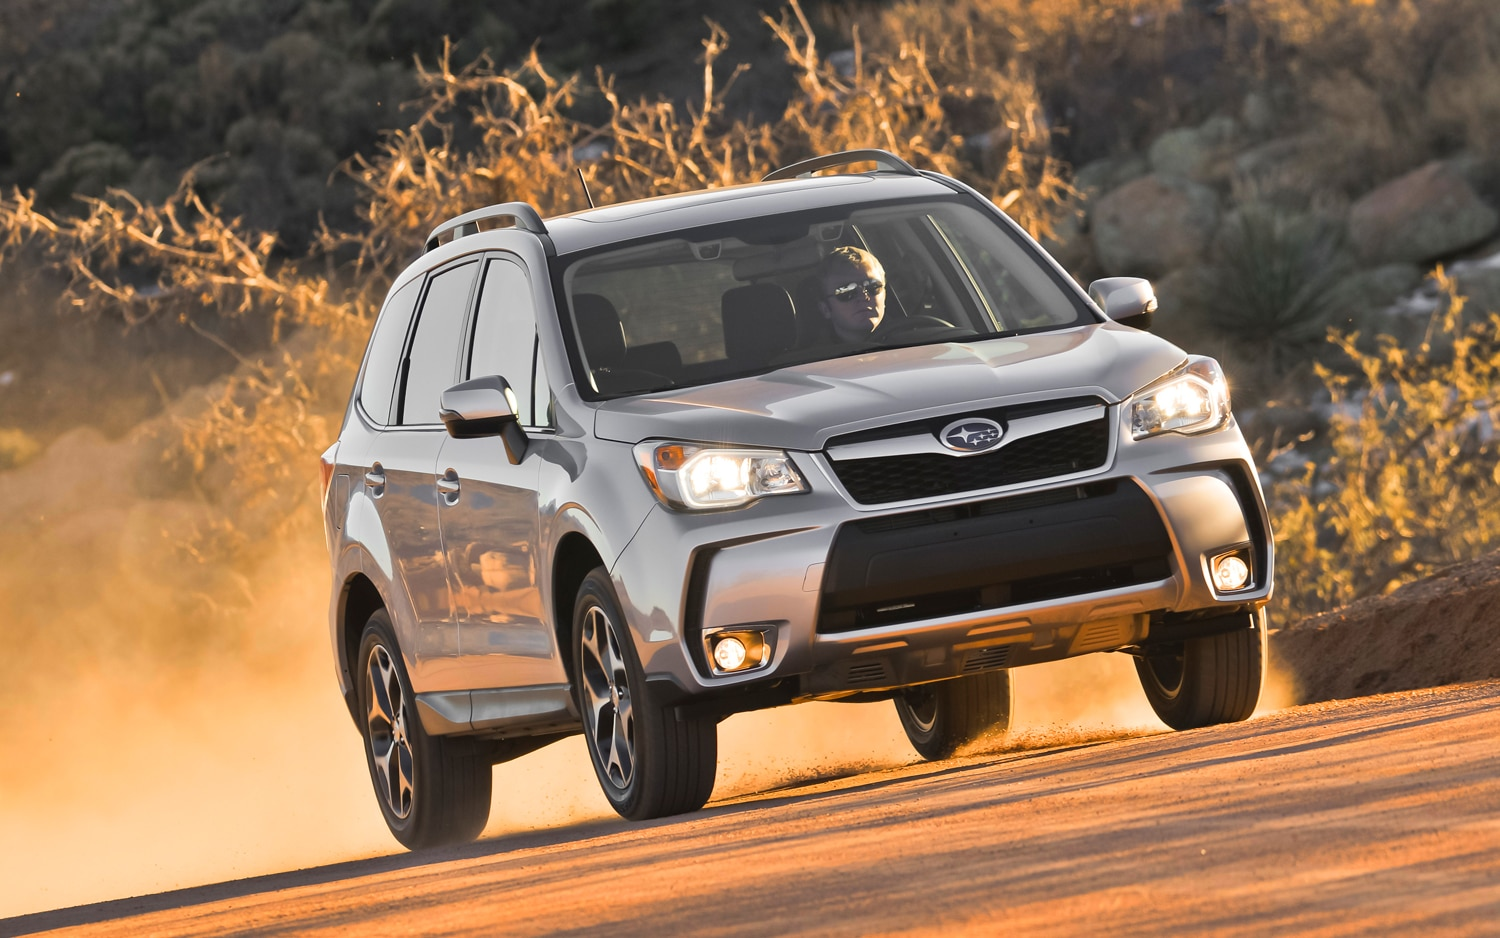 2014 Subaru Forester XT Front View 31